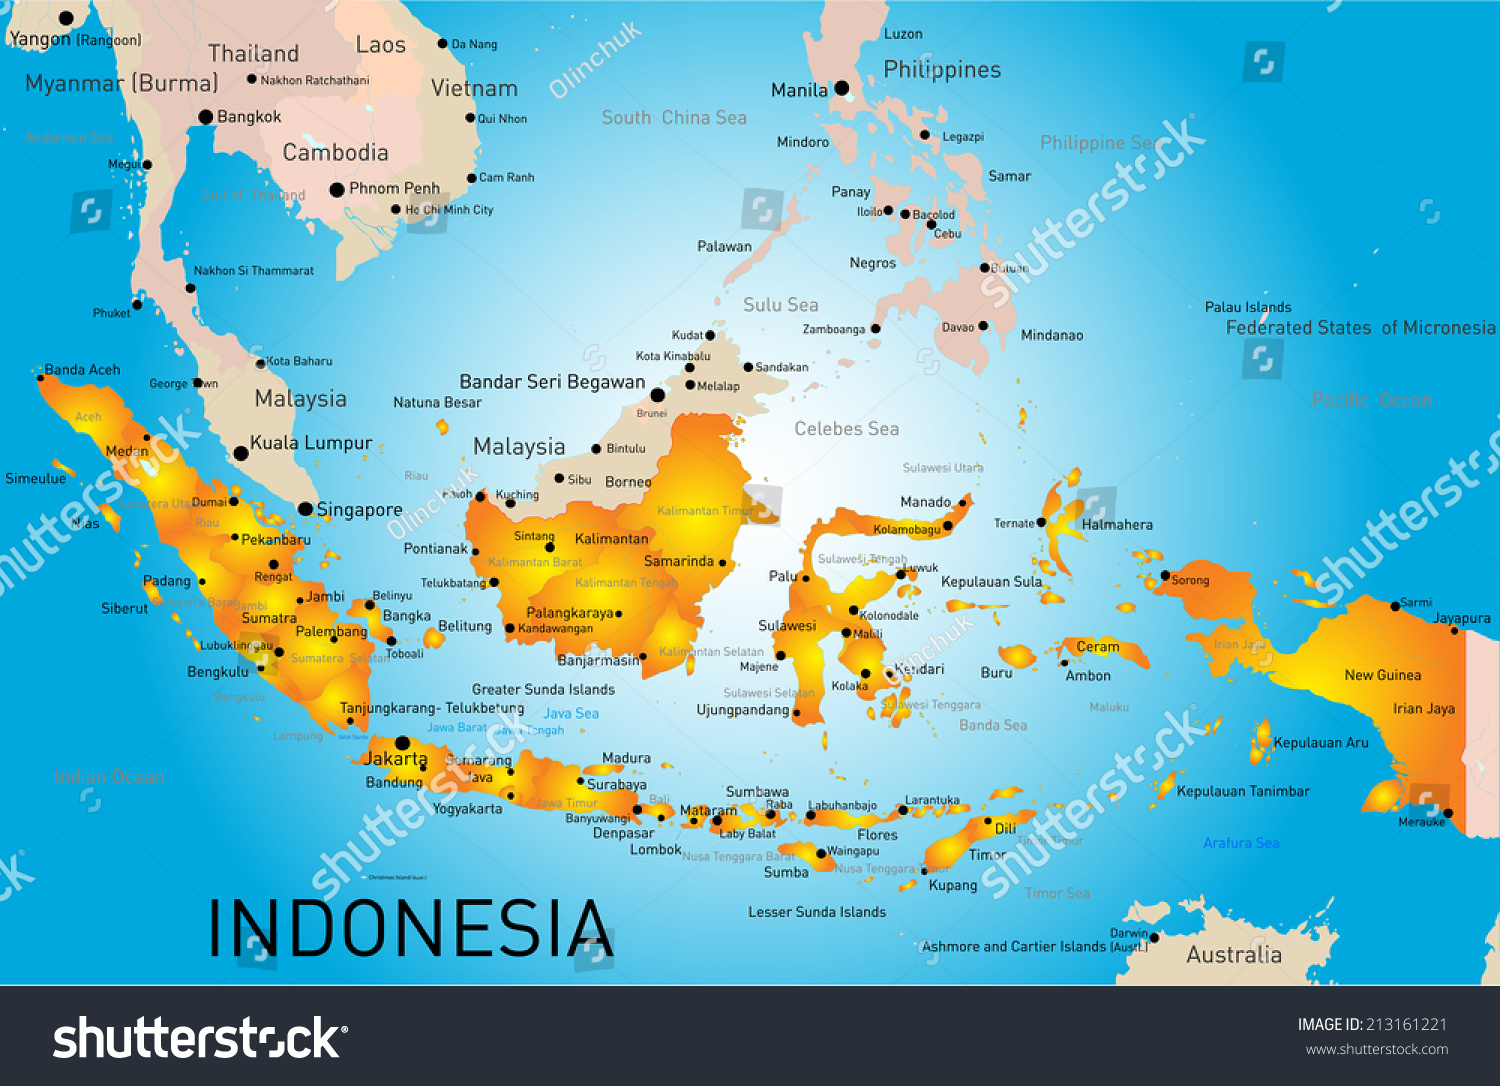 Indonesia country vector color map vectores en stock 213161221 indonesia country vector color map gumiabroncs Gallery